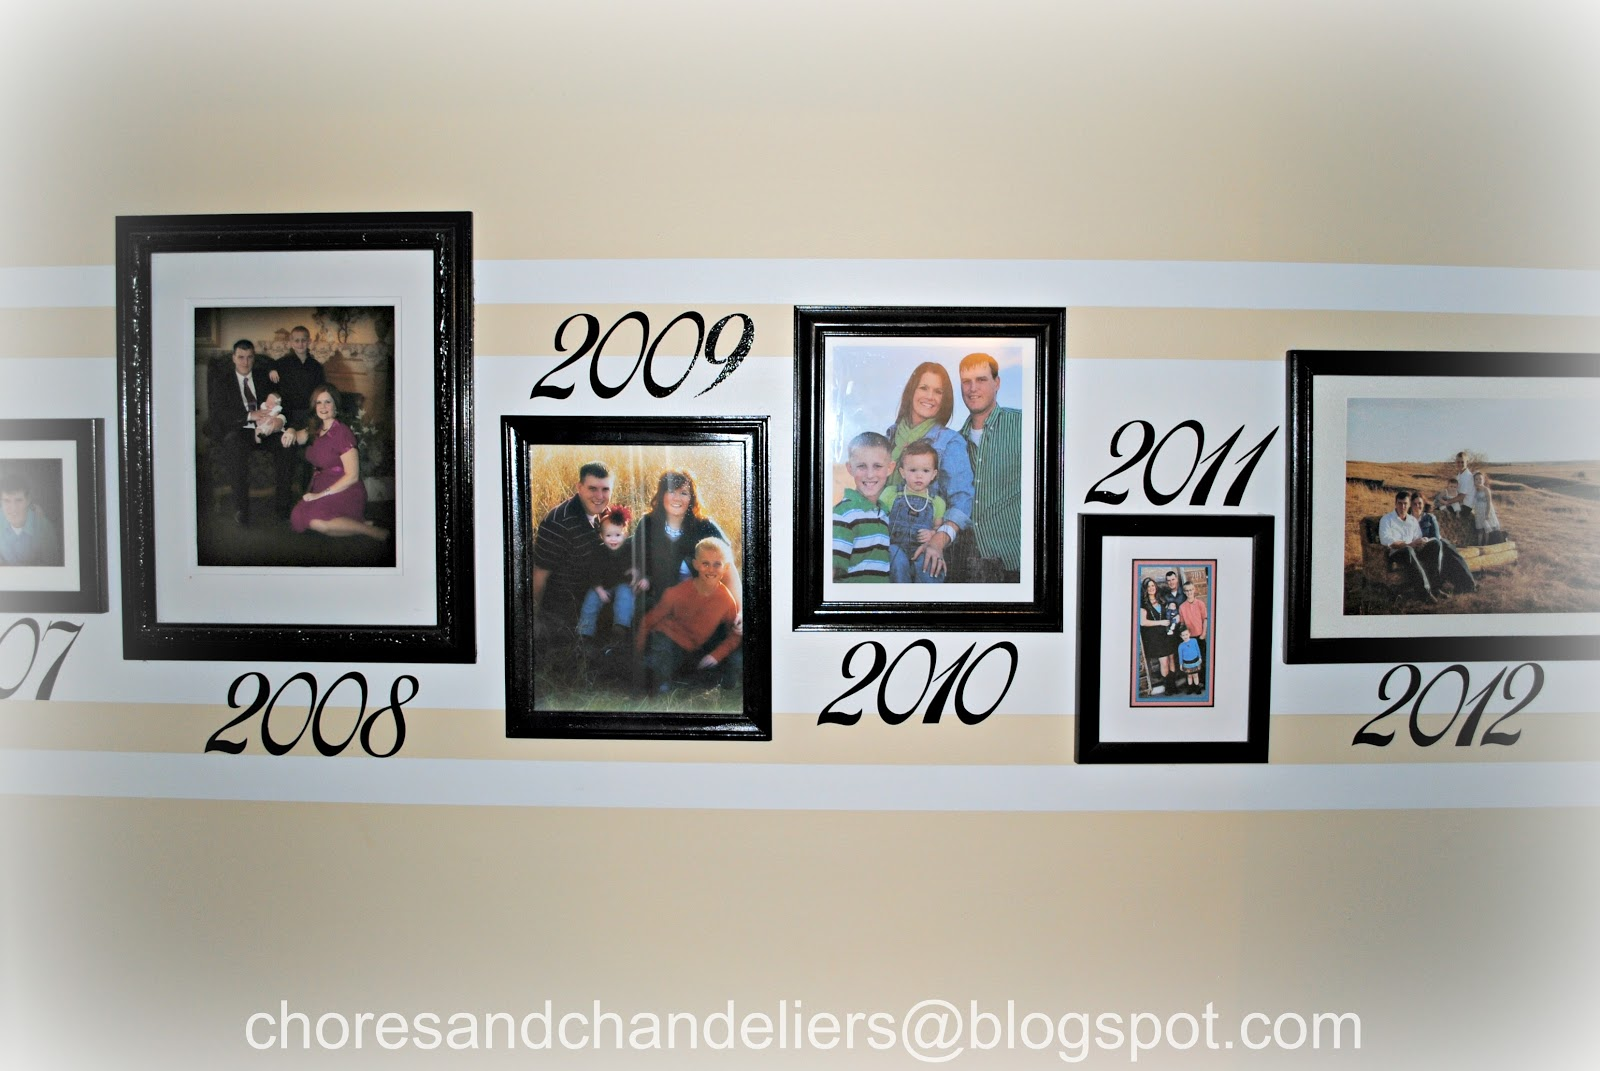 chores and chandeliers: Family Pictures / Hallway display